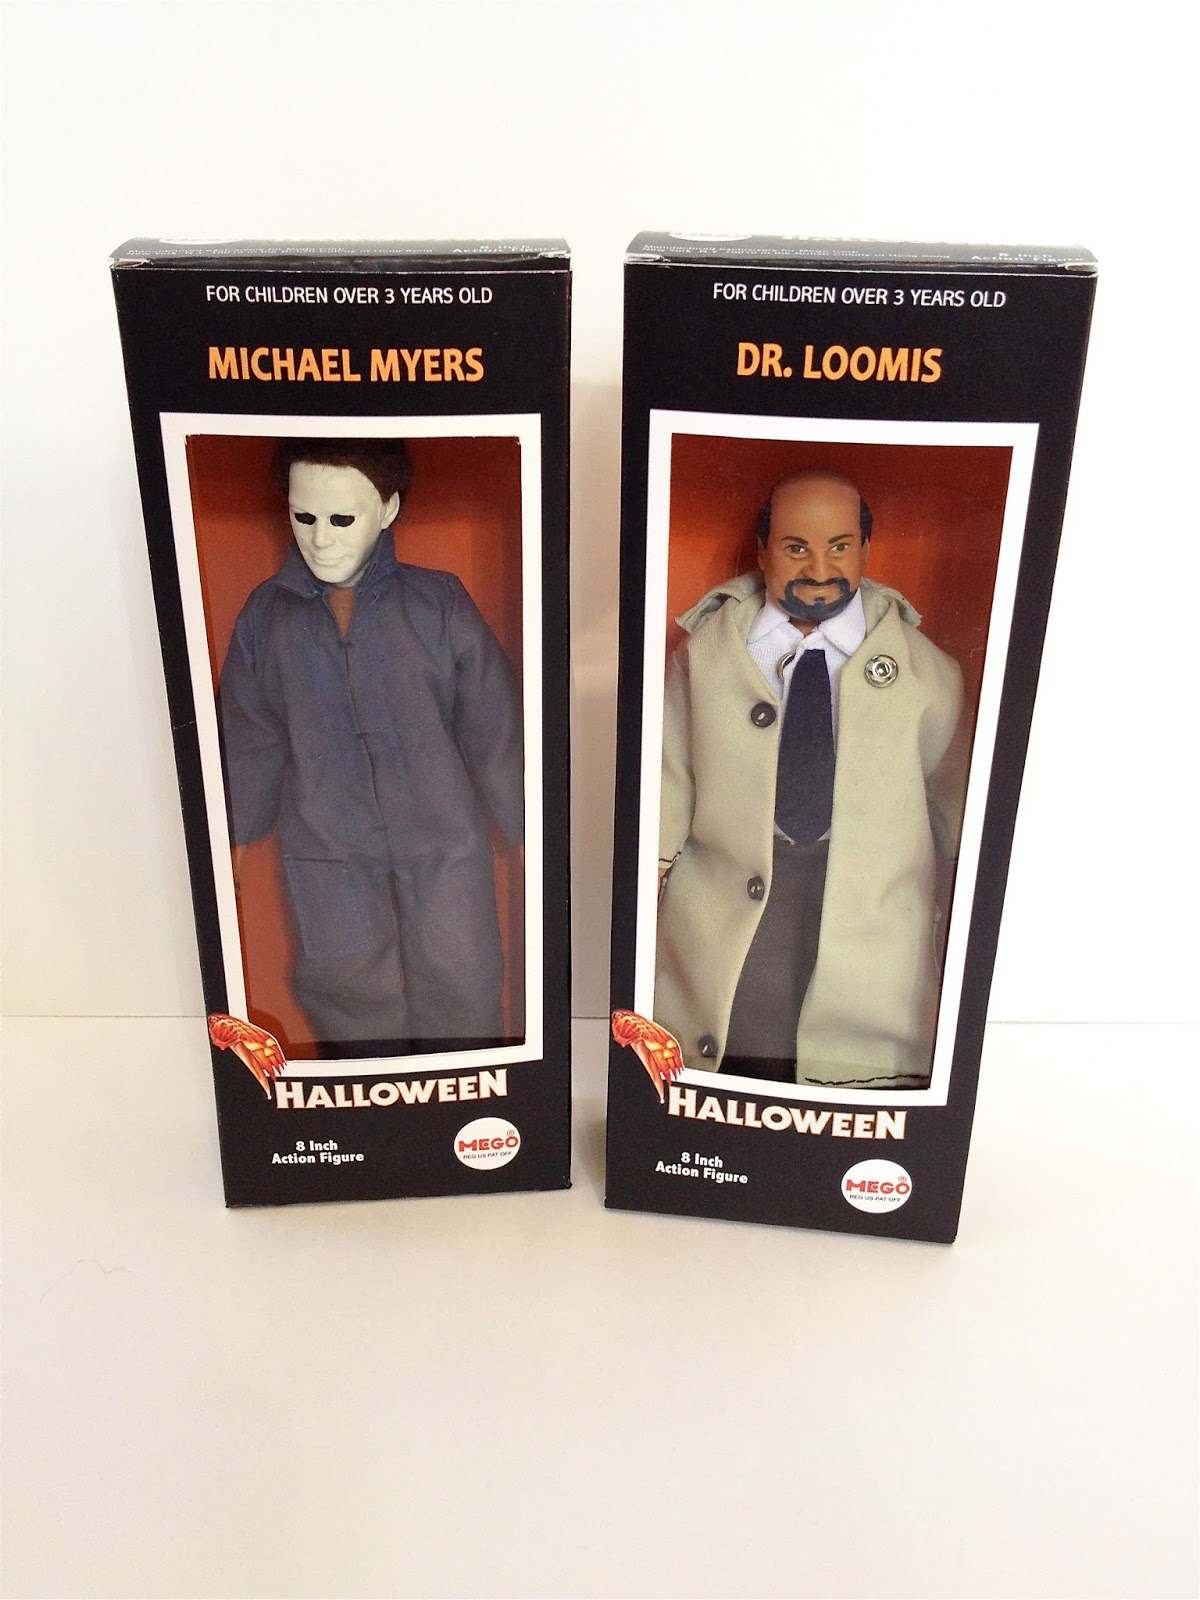 Planet Shoes Myer Death By Toys New Customs Vintage Mego Halloween Figures